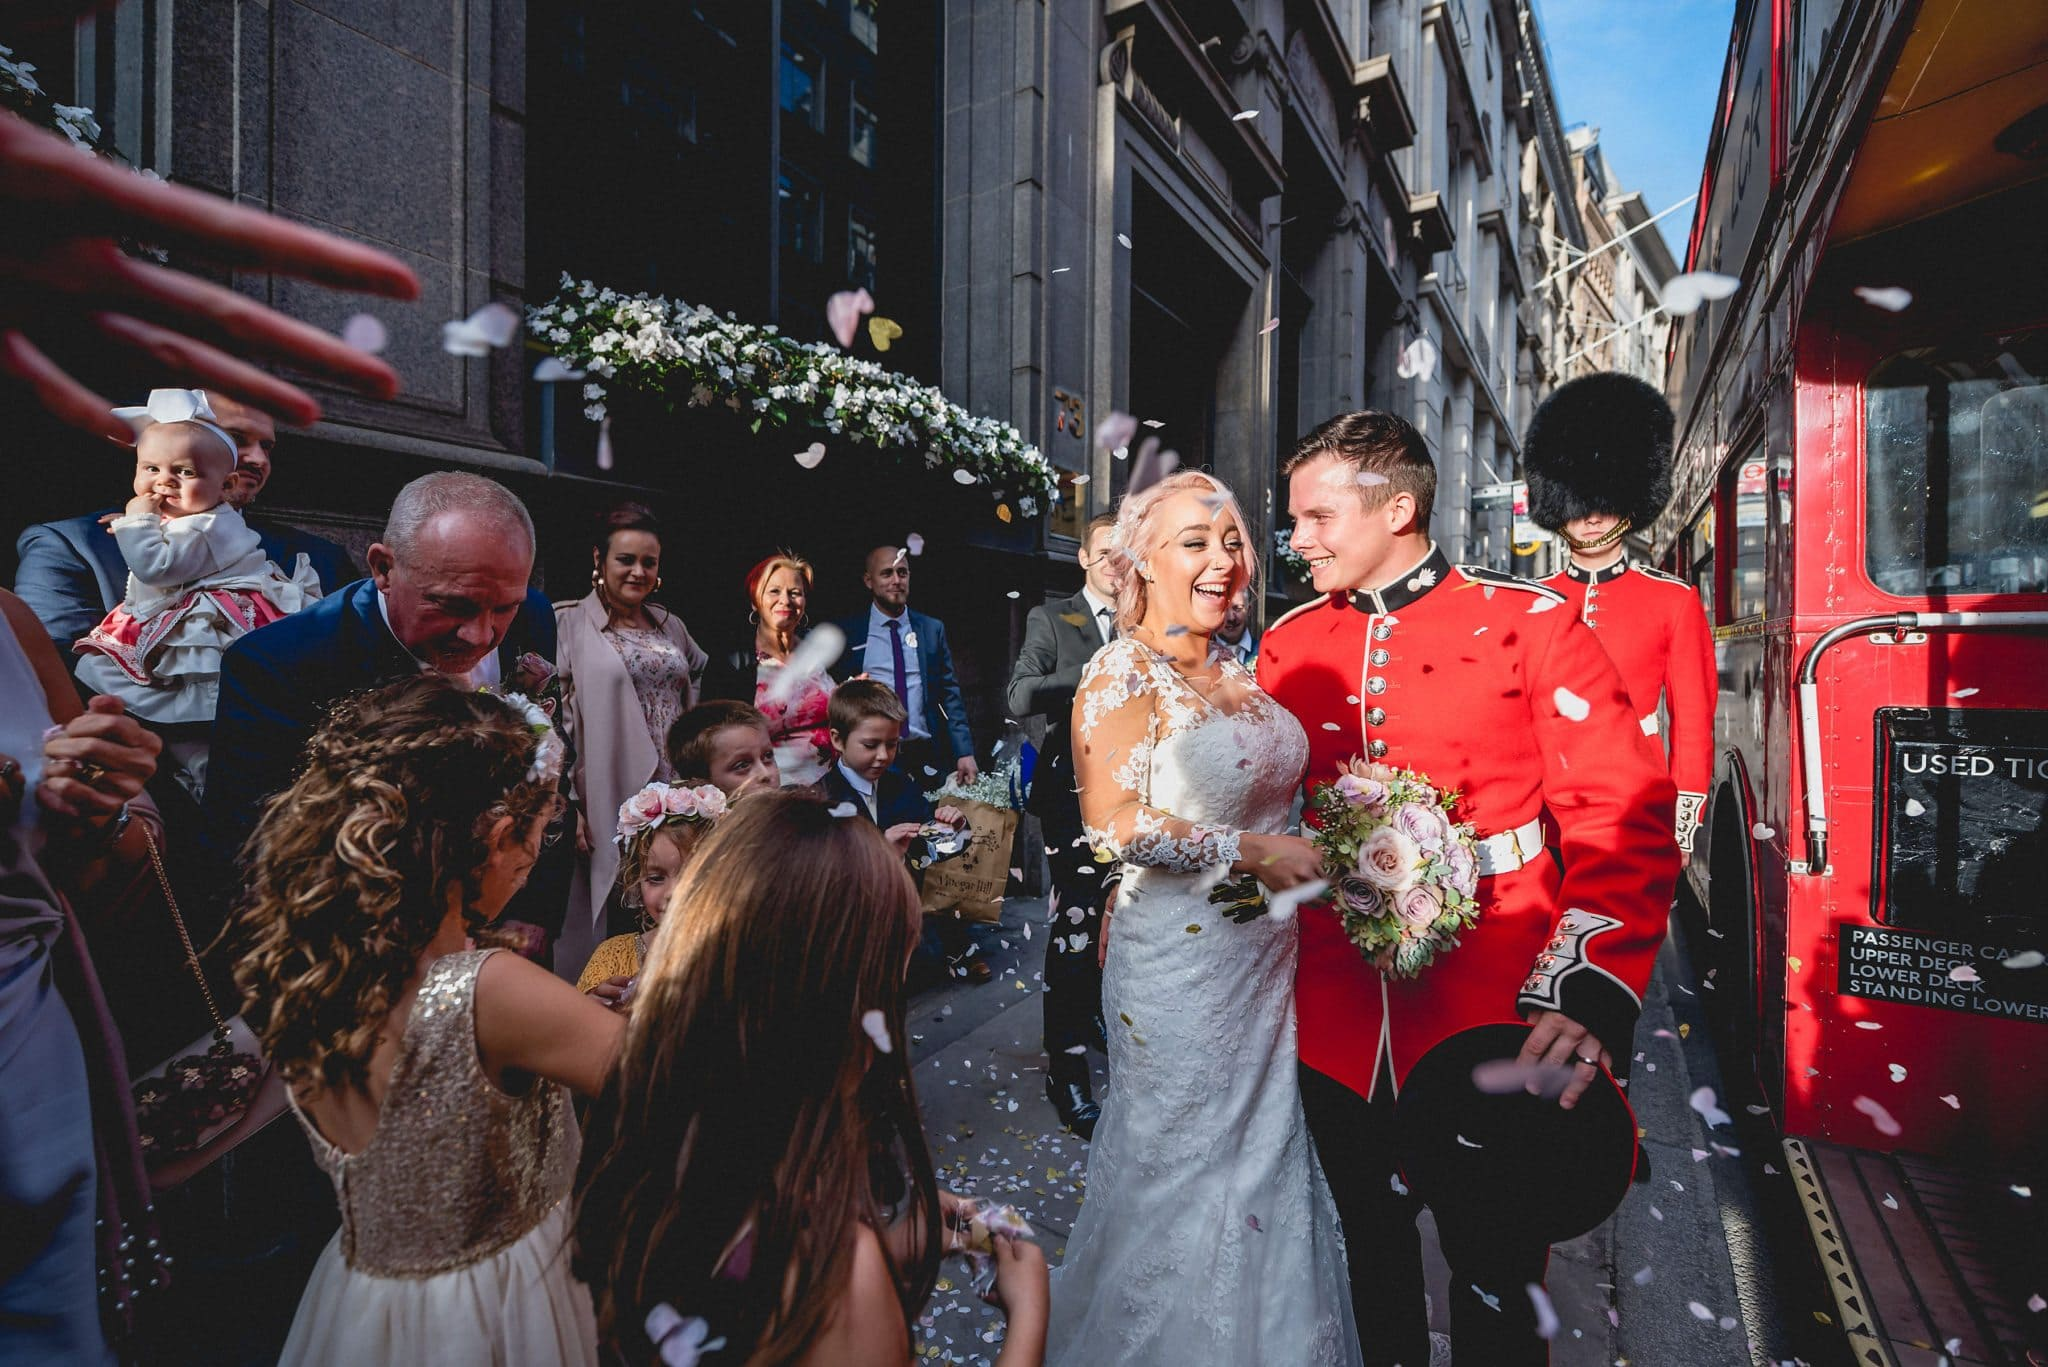 The newlyweds arrive at their reception venue by London bus amid a shower of confetti